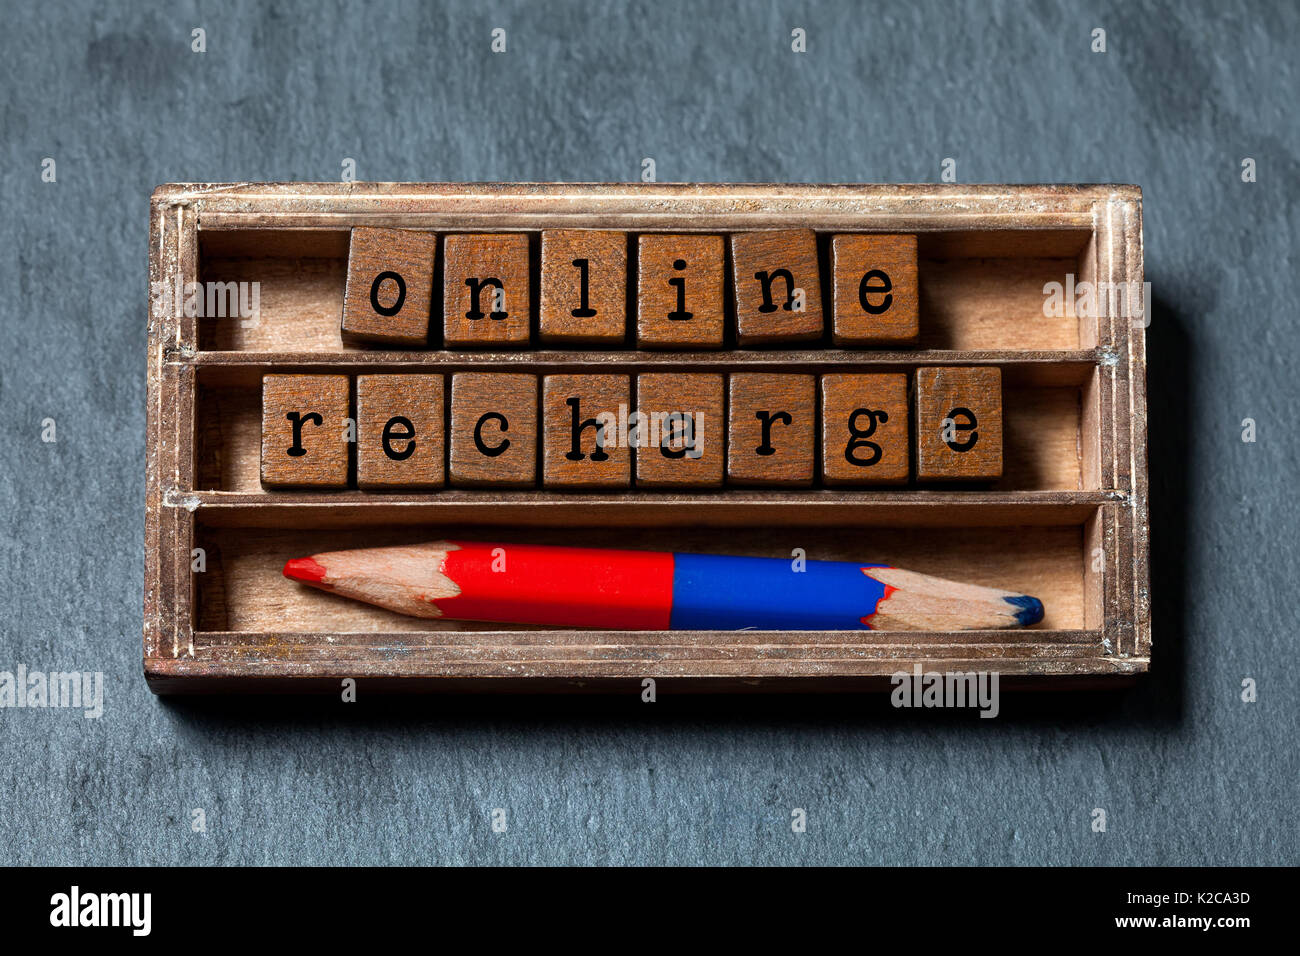 Online recharge concept. Vintage box, wooden cubes with old style letters, colorful red blue pencil. Gray stone textured background. Close-up, up view, soft focus. - Stock Image